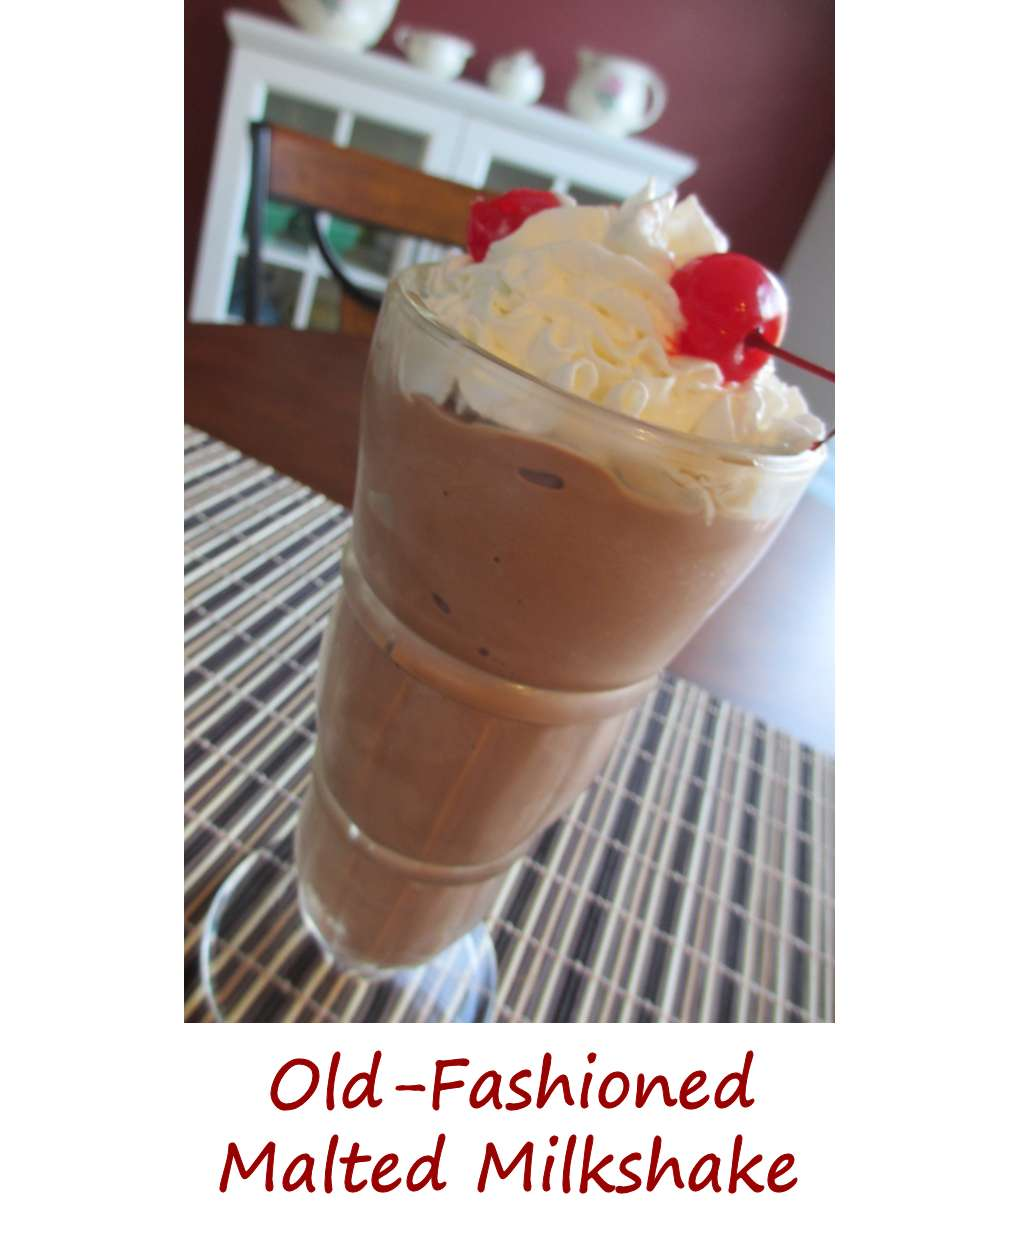 MILK SHAKE - Highland Park Old-Fashioned Soda Fountain ICE 76